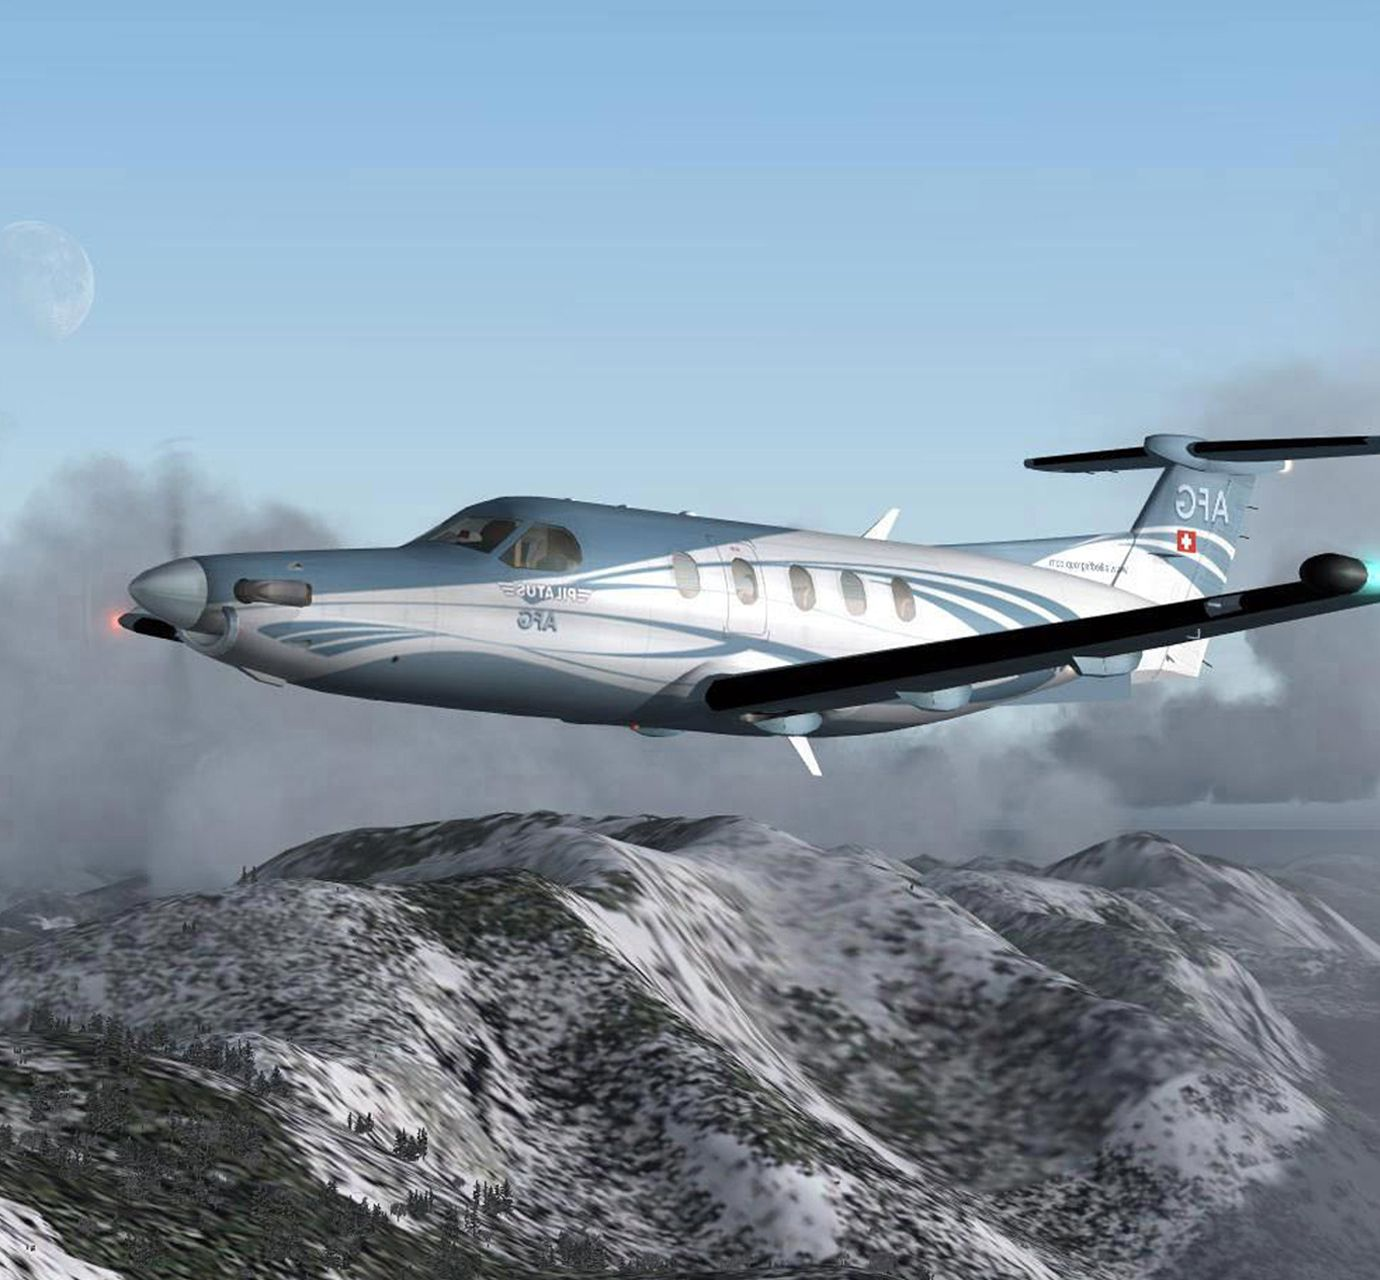 Rental Plane in India Air charter, Fighter jets, Air